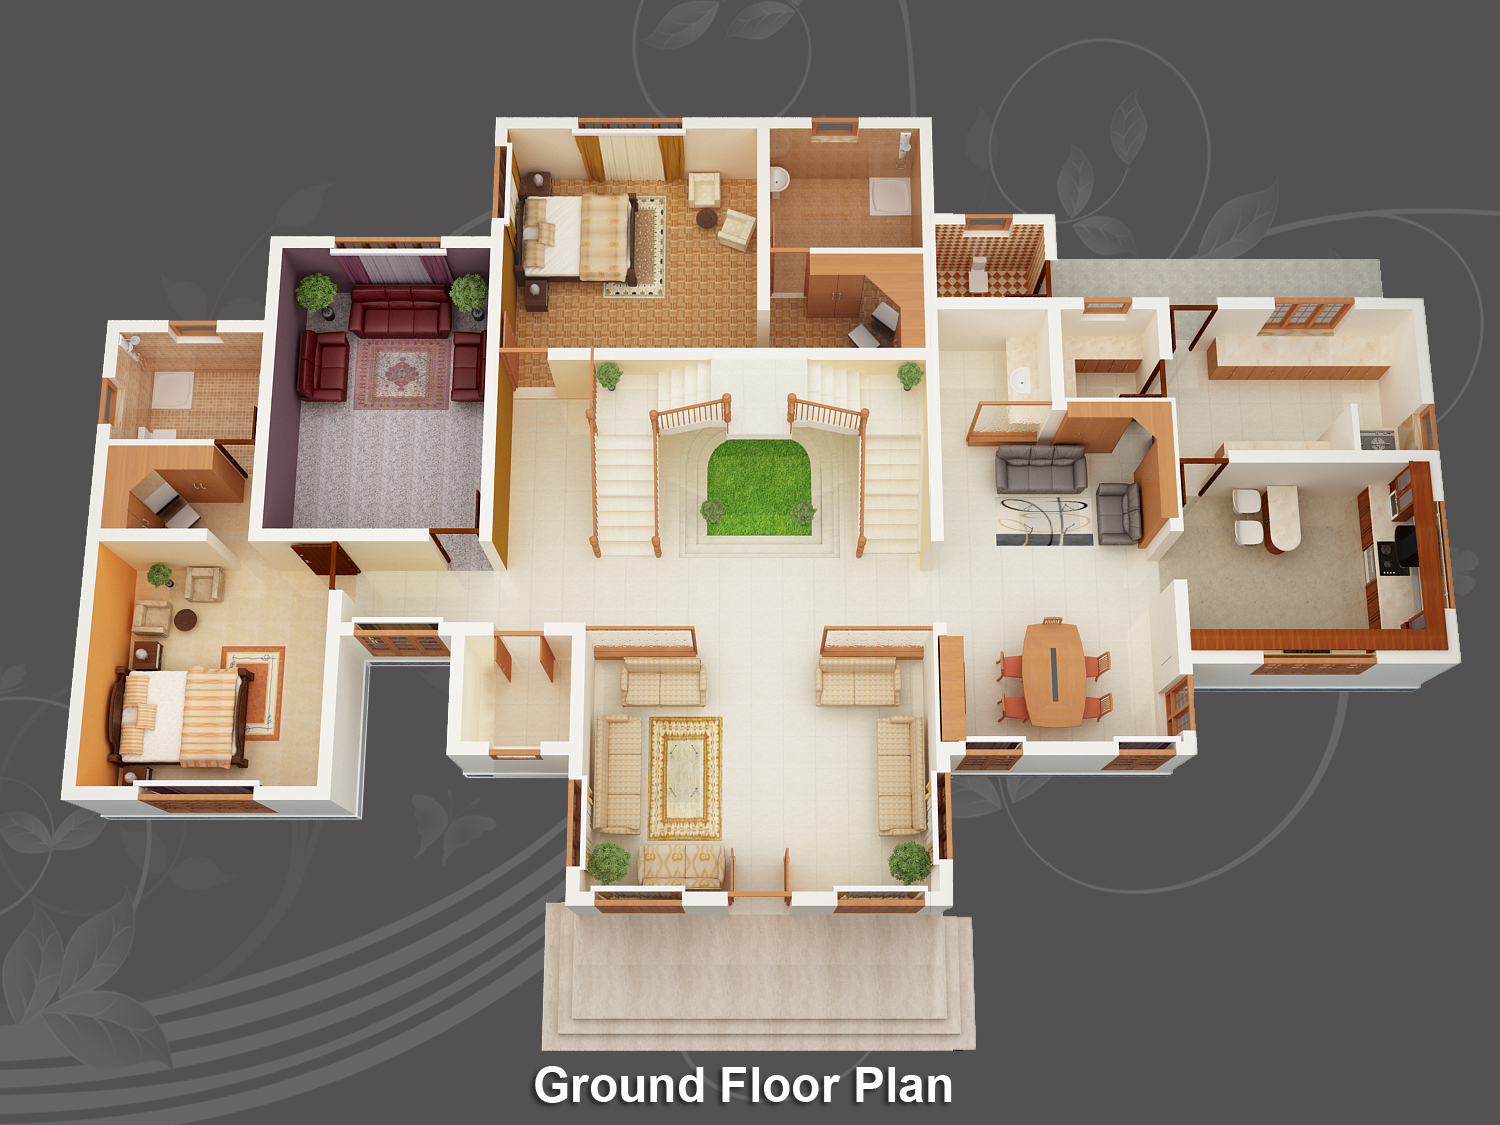 Evens Construction Pvt Ltd 3d House Plan 20 05 2011: 3d house design program